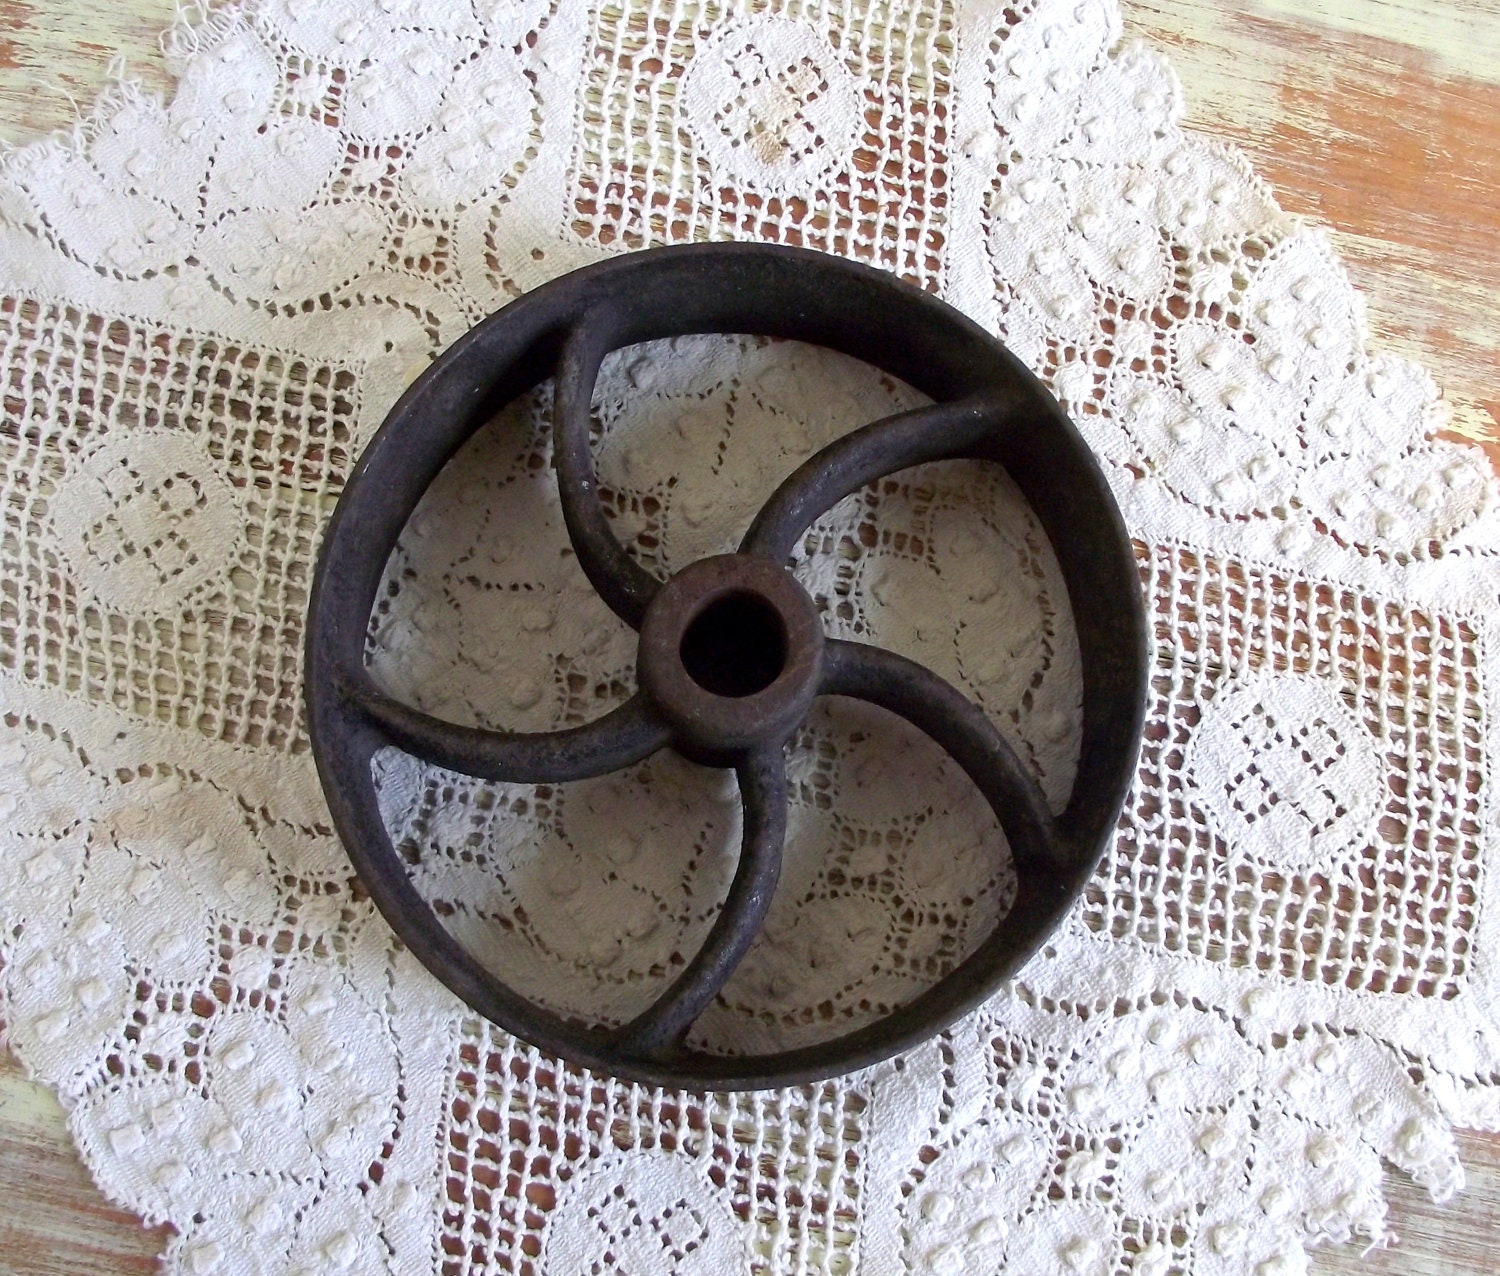 Pulley wheel industrial decor antique rustic farmhouse decor for Decorating with pulleys